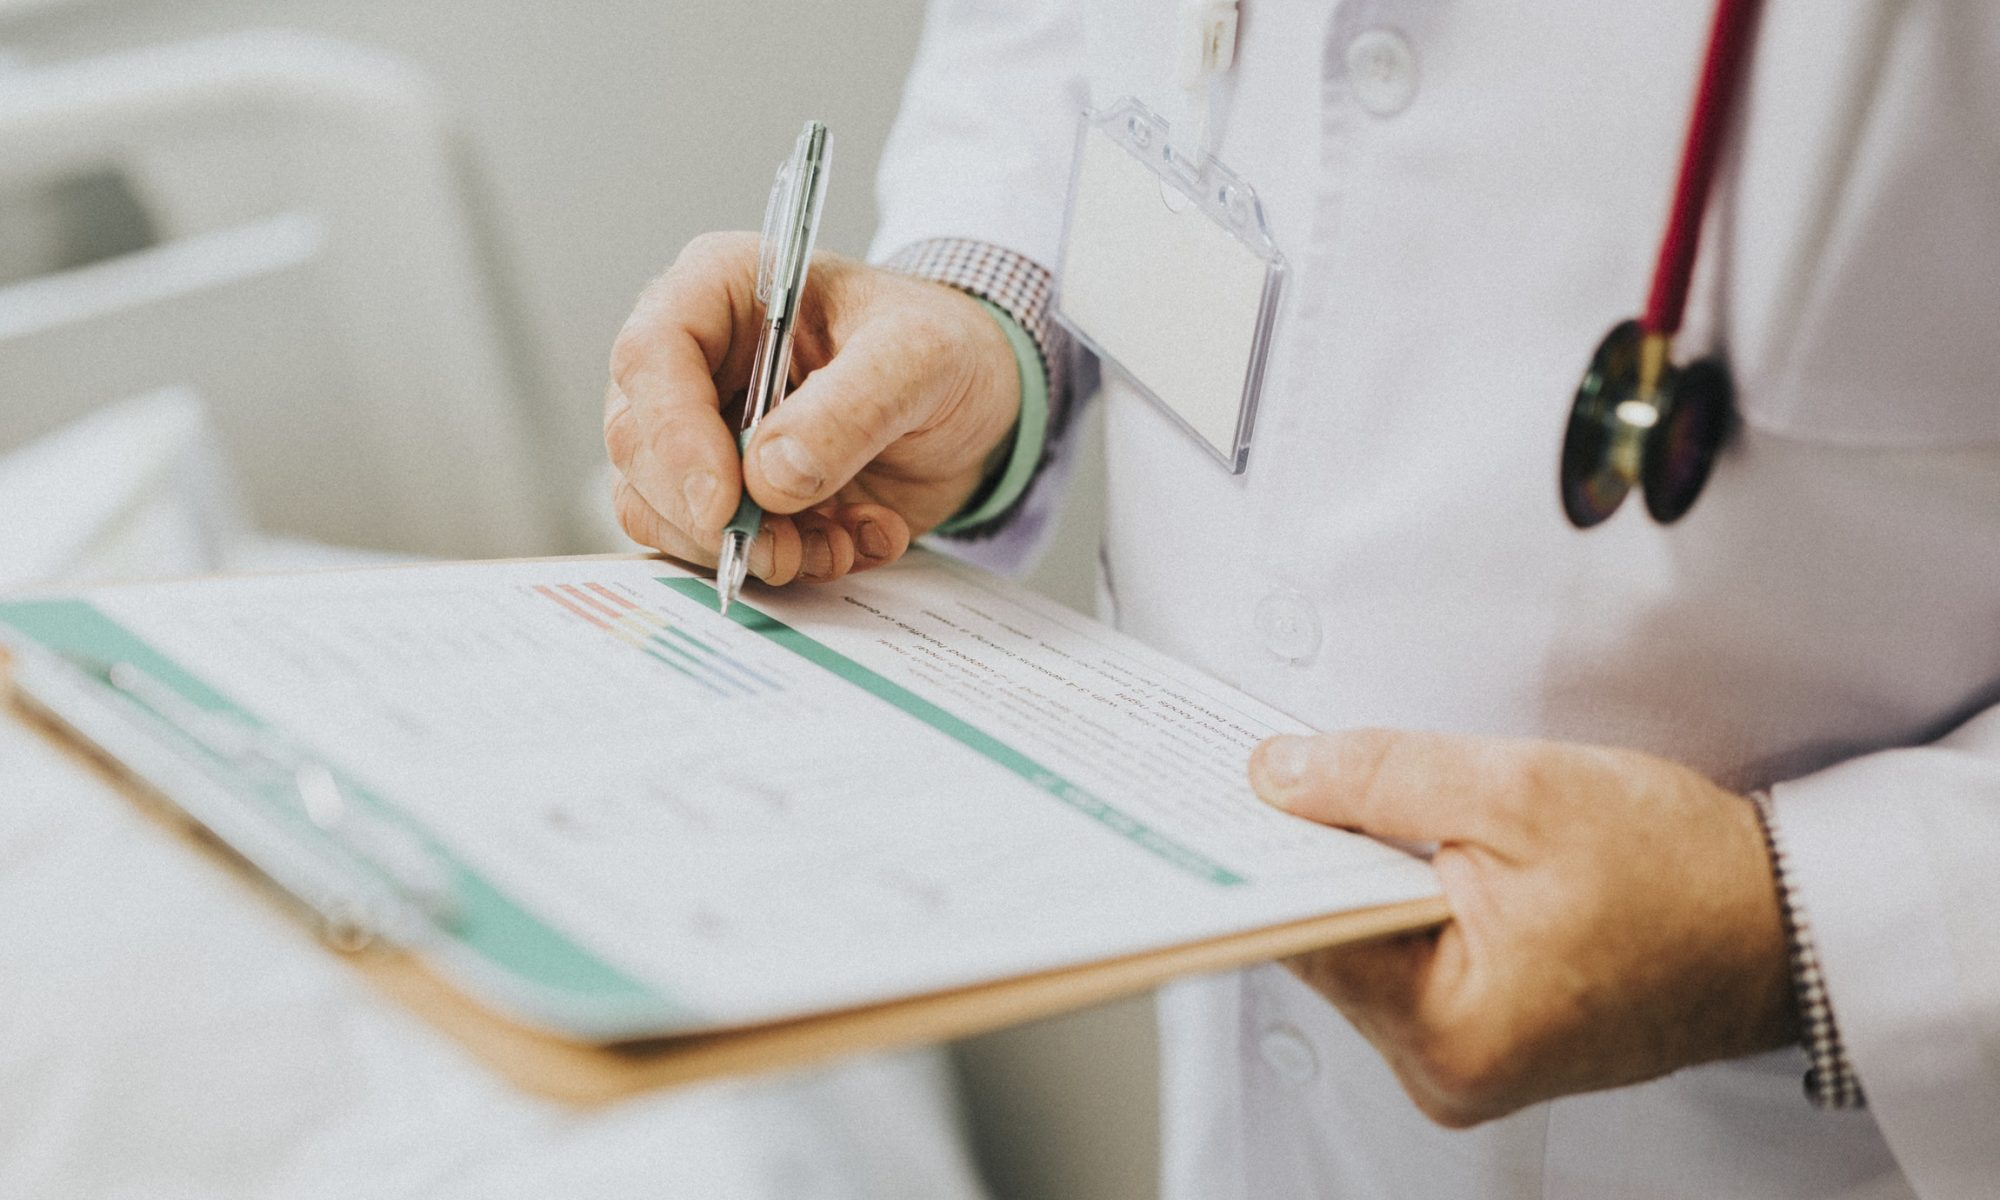 Doctor in lab coat with stethoscope writing on medical chart in clipboard